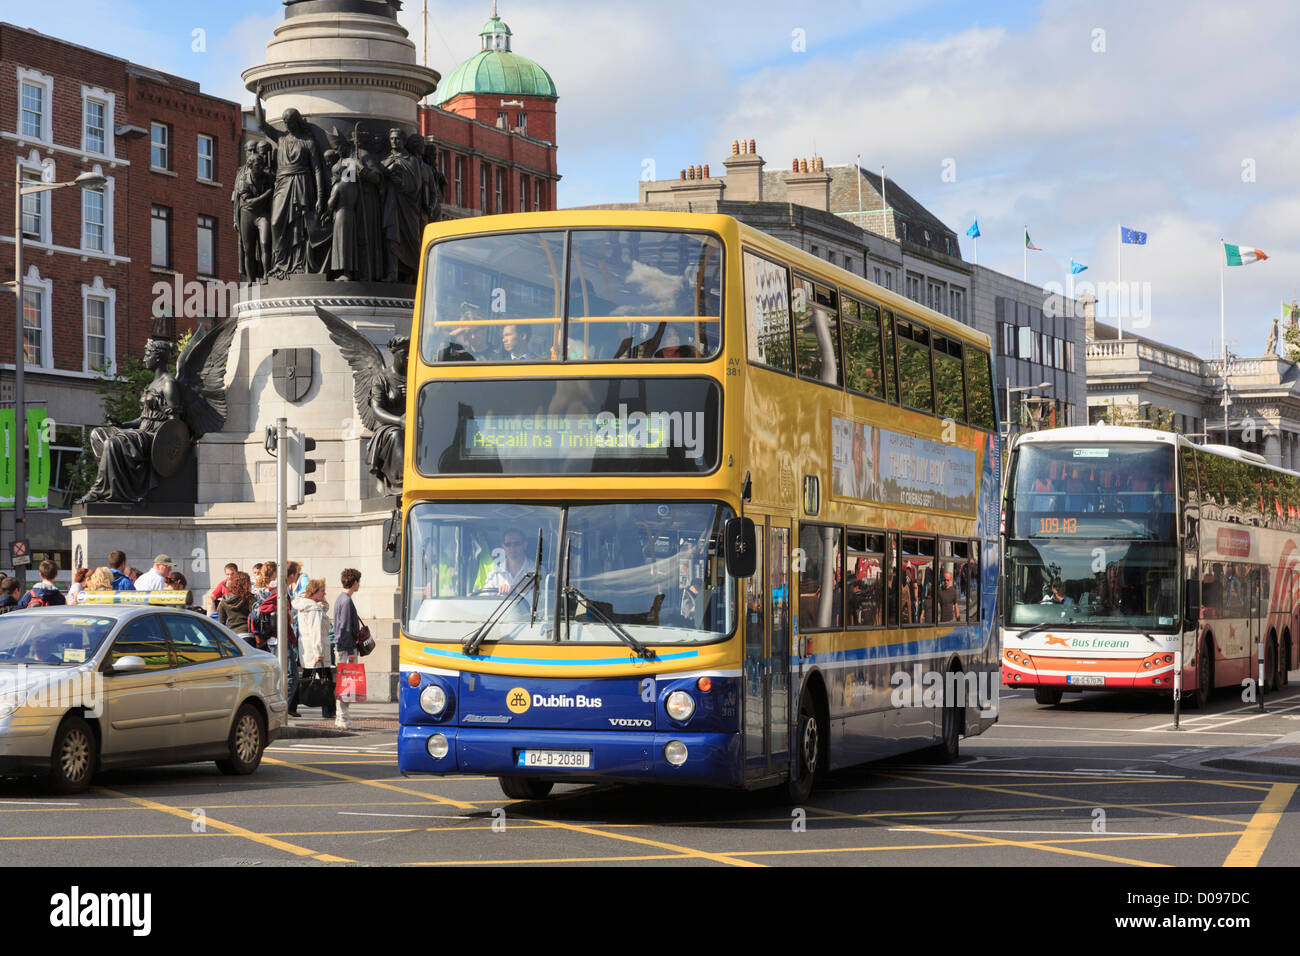 Double decker bus passing the Daniel O'Connell Monument on O'Connell Street, Dublin, Southern Ireland, Eire - Stock Image